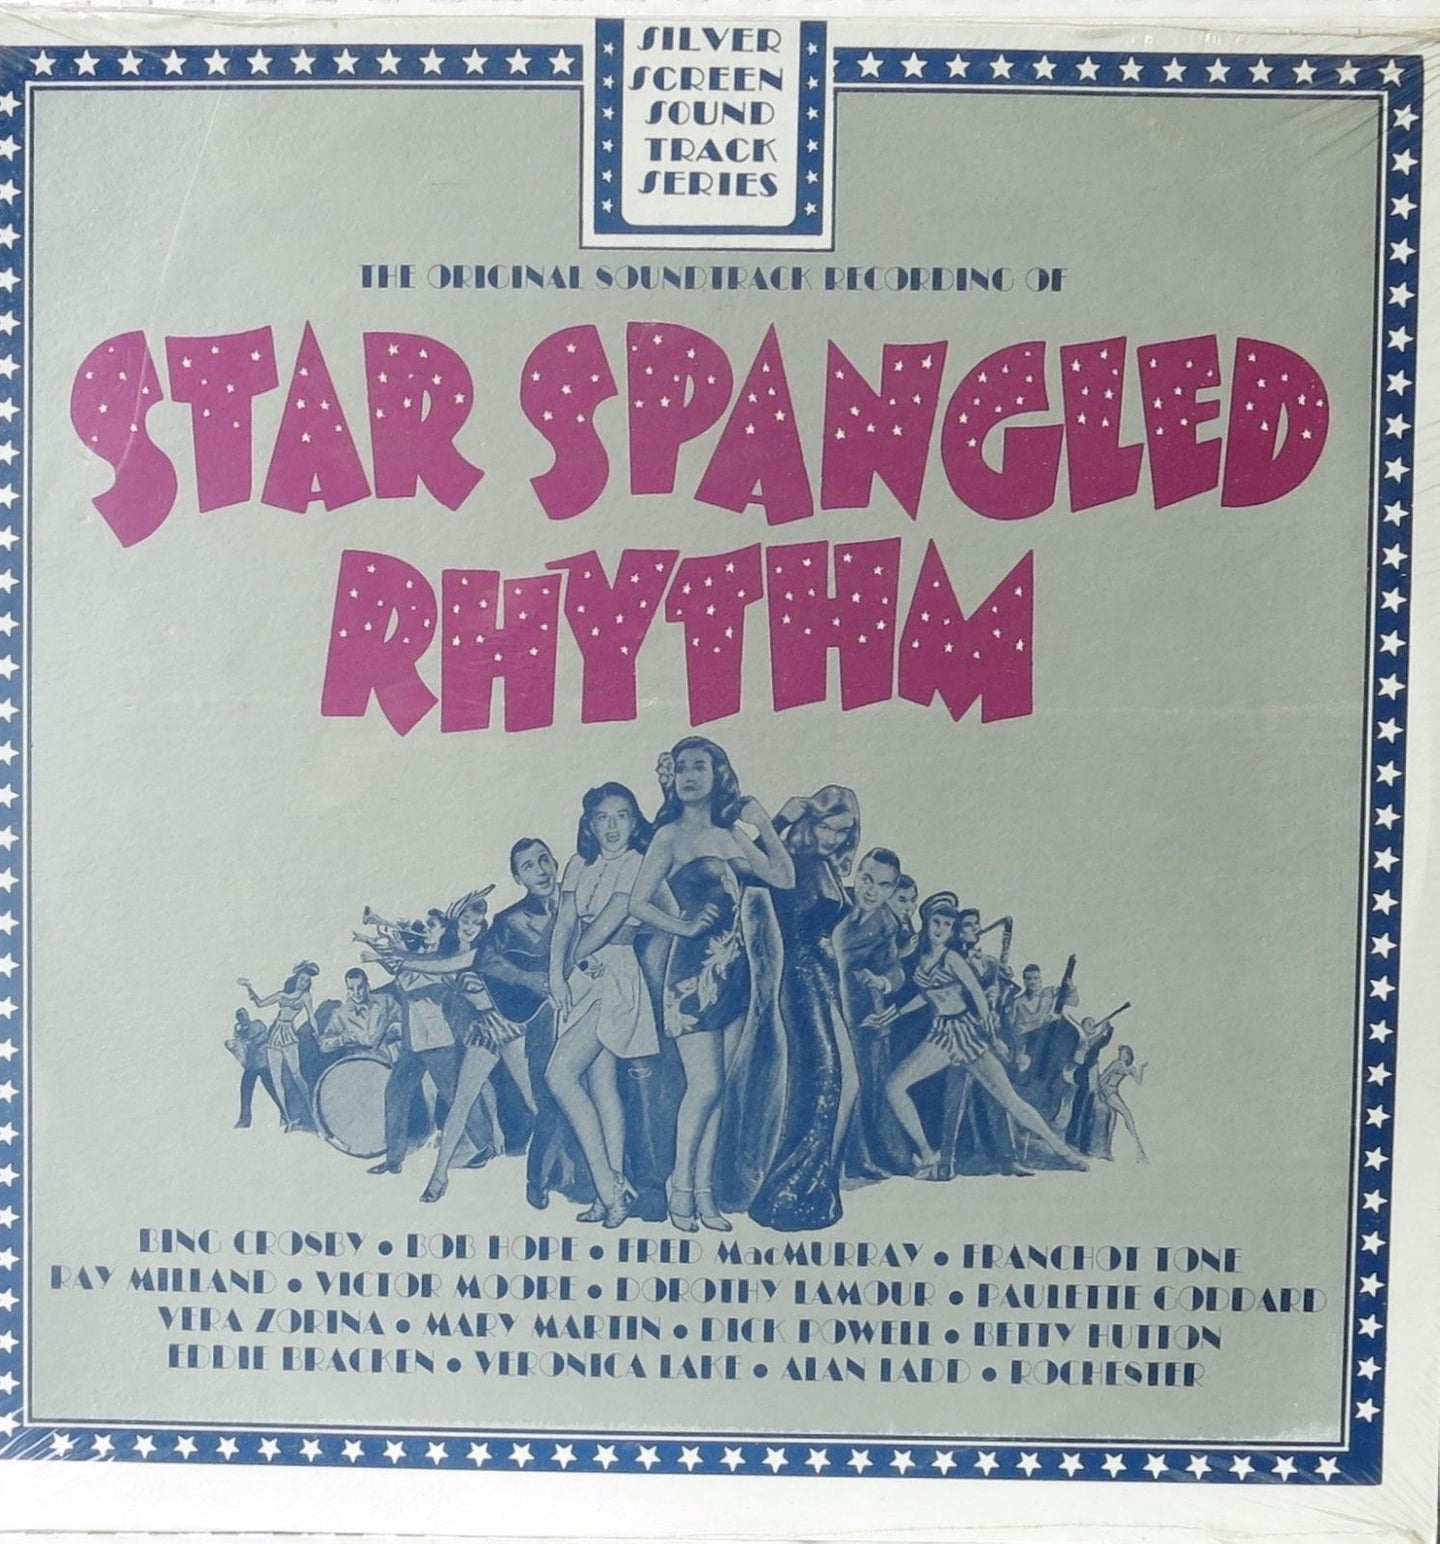 The Original Soundtrack Recording Of Star Spangled Rhythm - Curtain Calls